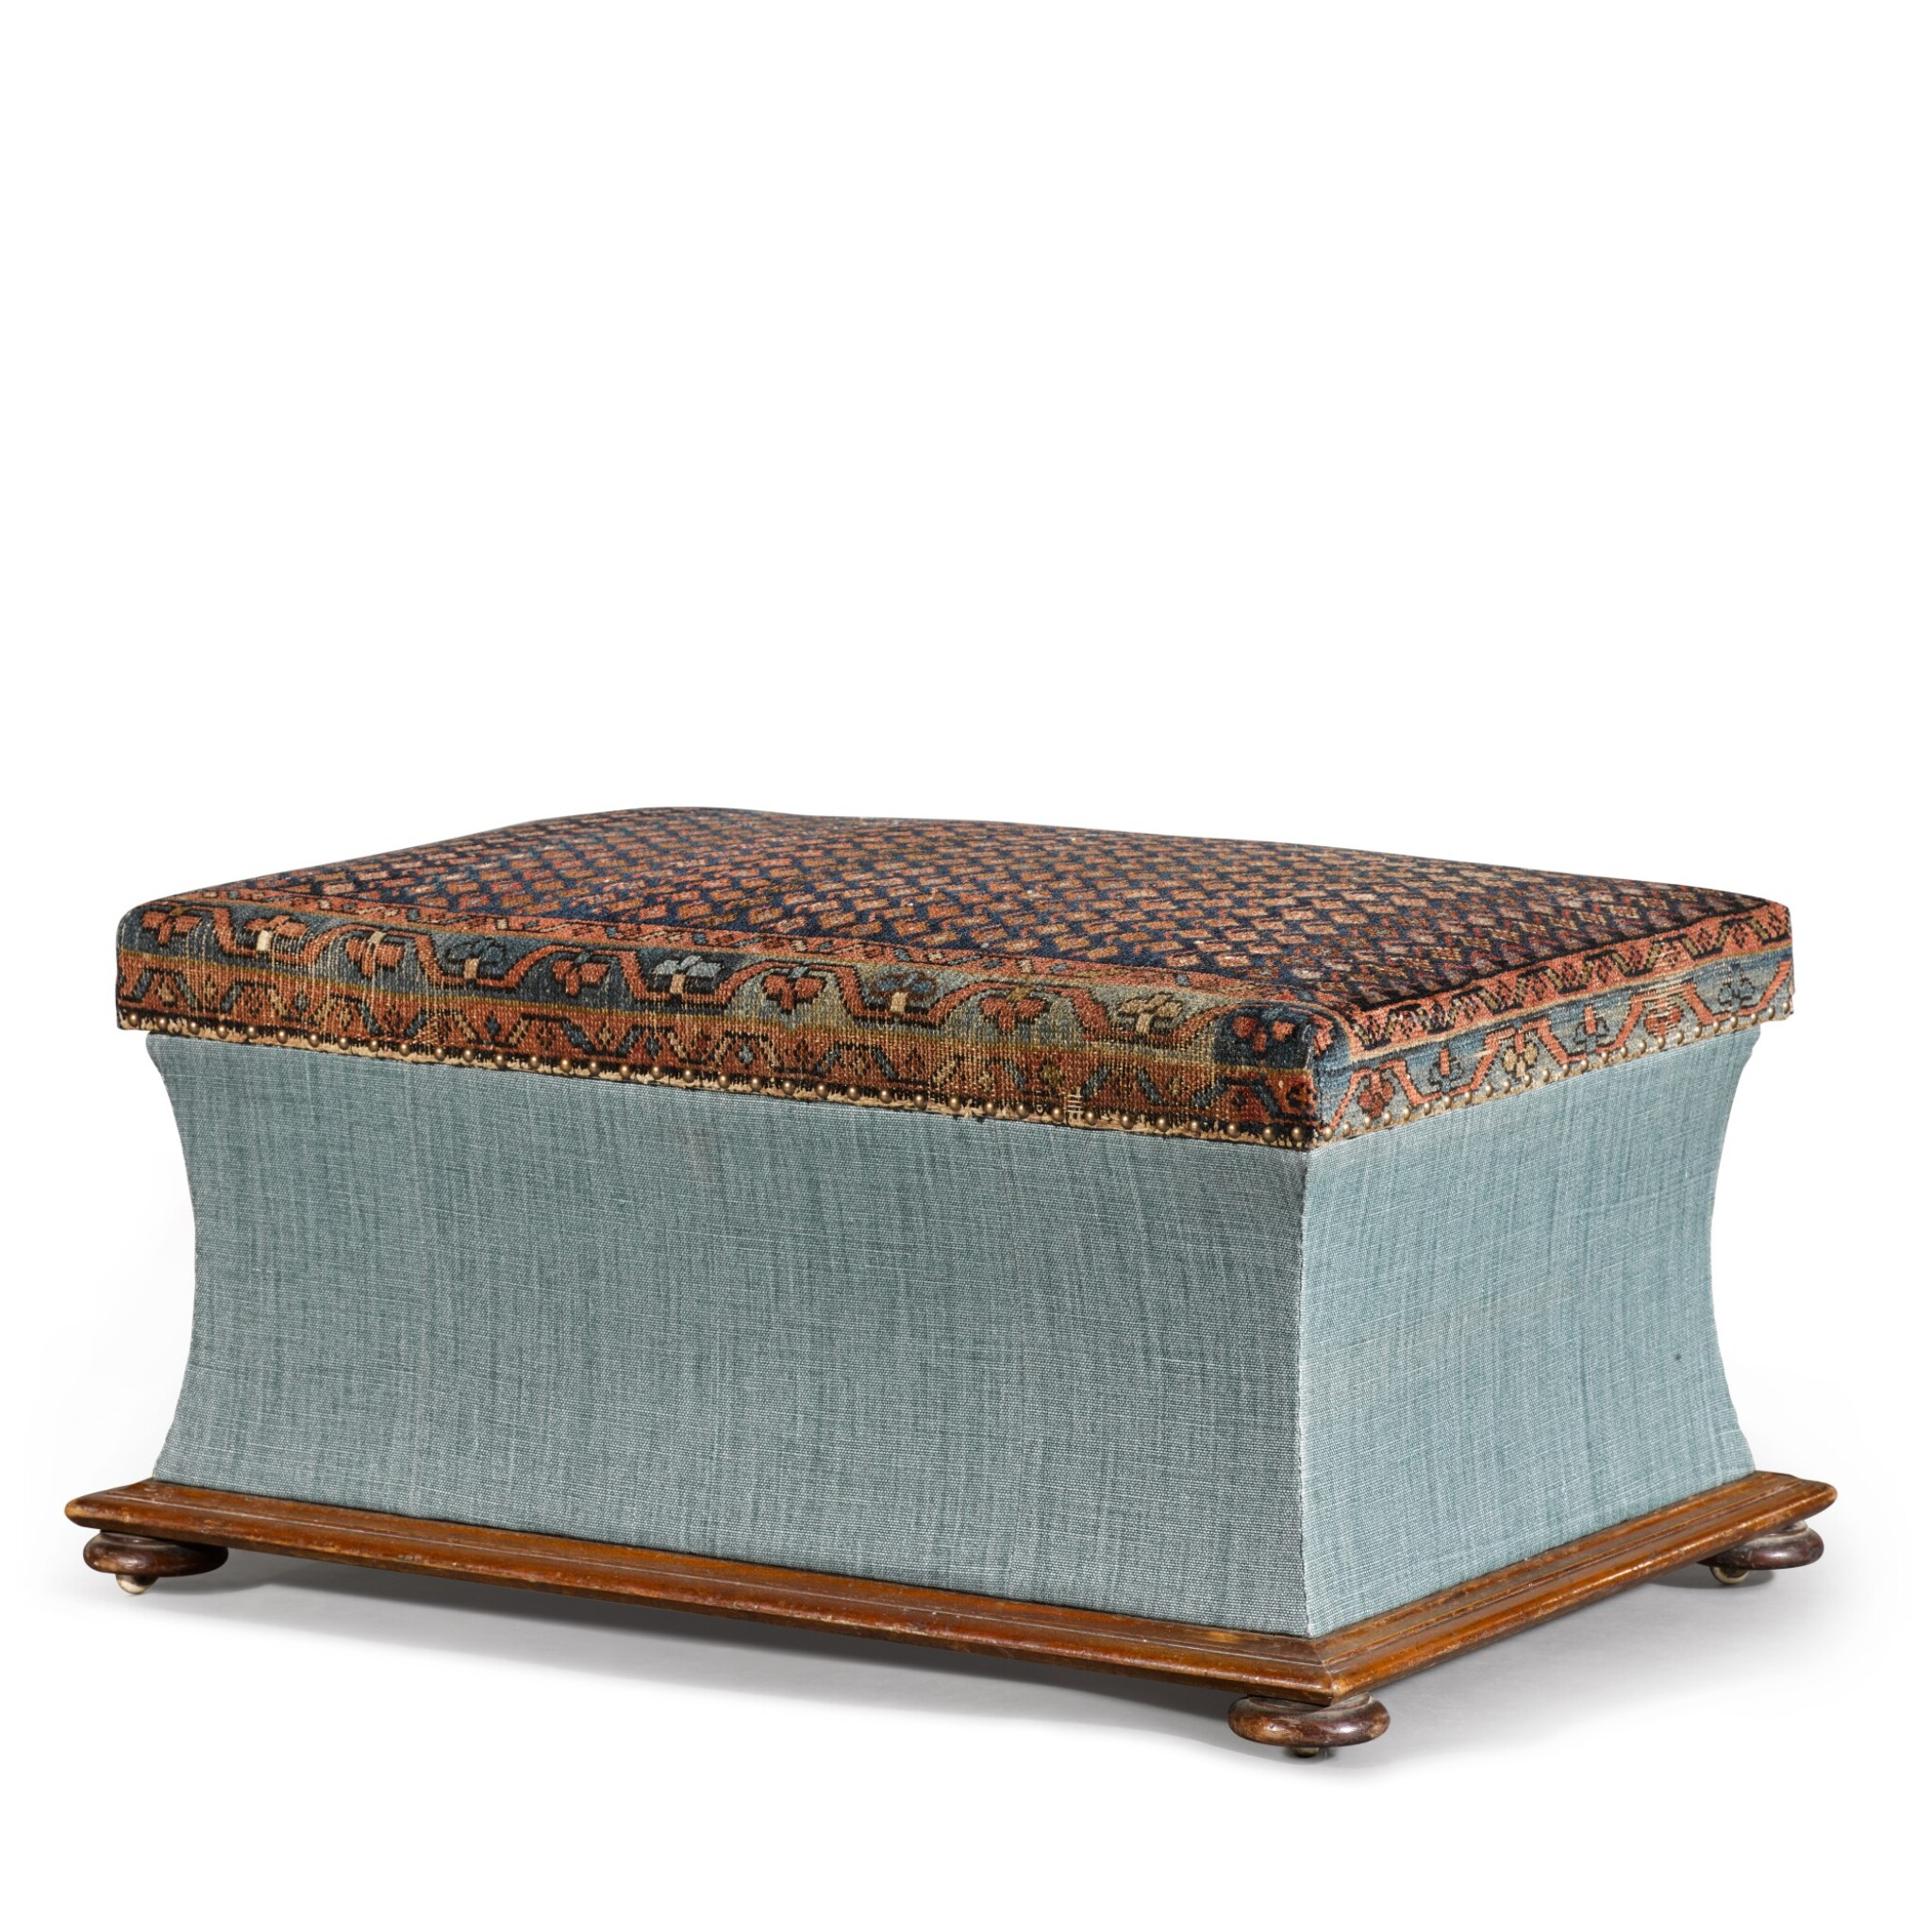 View full screen - View 1 of Lot 12. AN EARLY VICTORIAN UPHOLSTERED MAHOGANY OTTOMAN, CIRCA 1840.